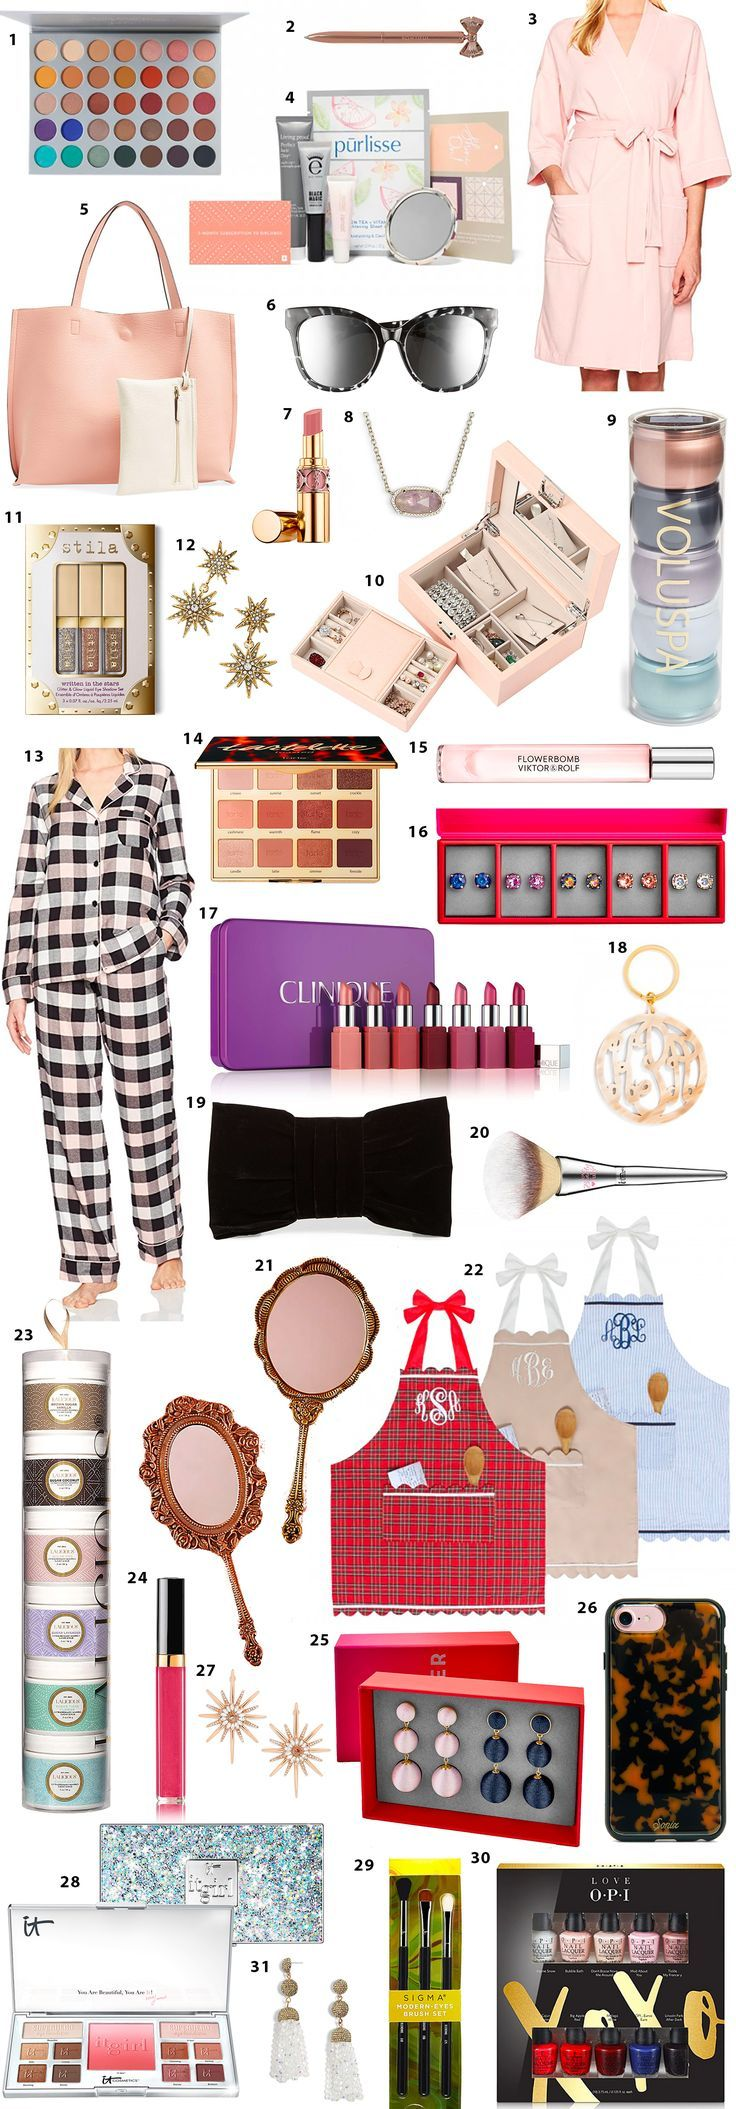 The best Christmas gift ideas for women under $50!